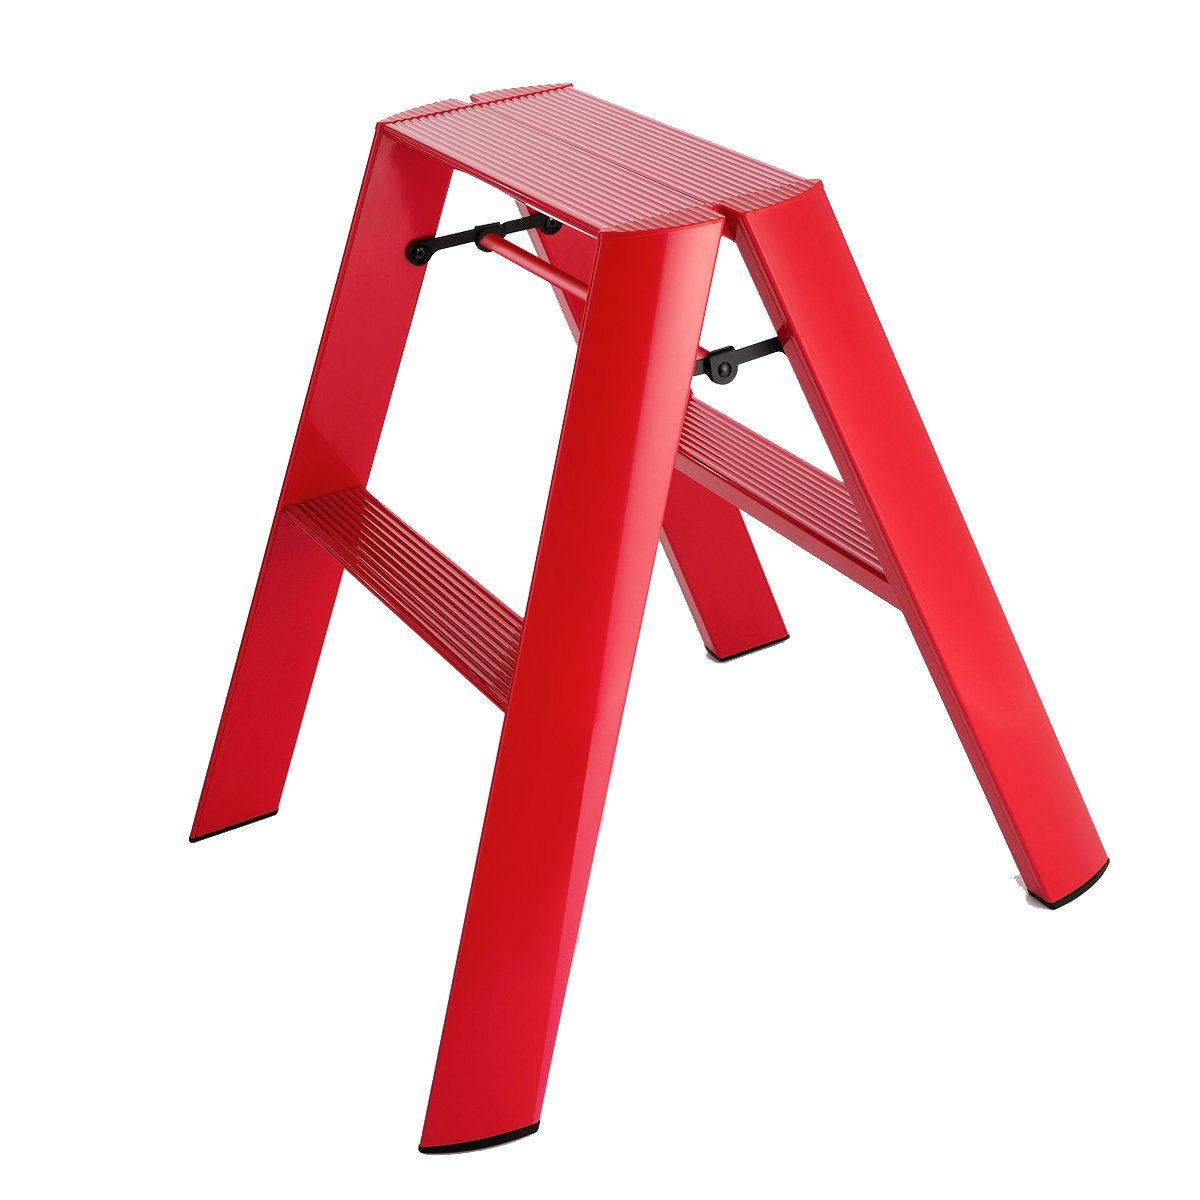 Hasegawa Ladders Lucano Stepladder 2 Step Red